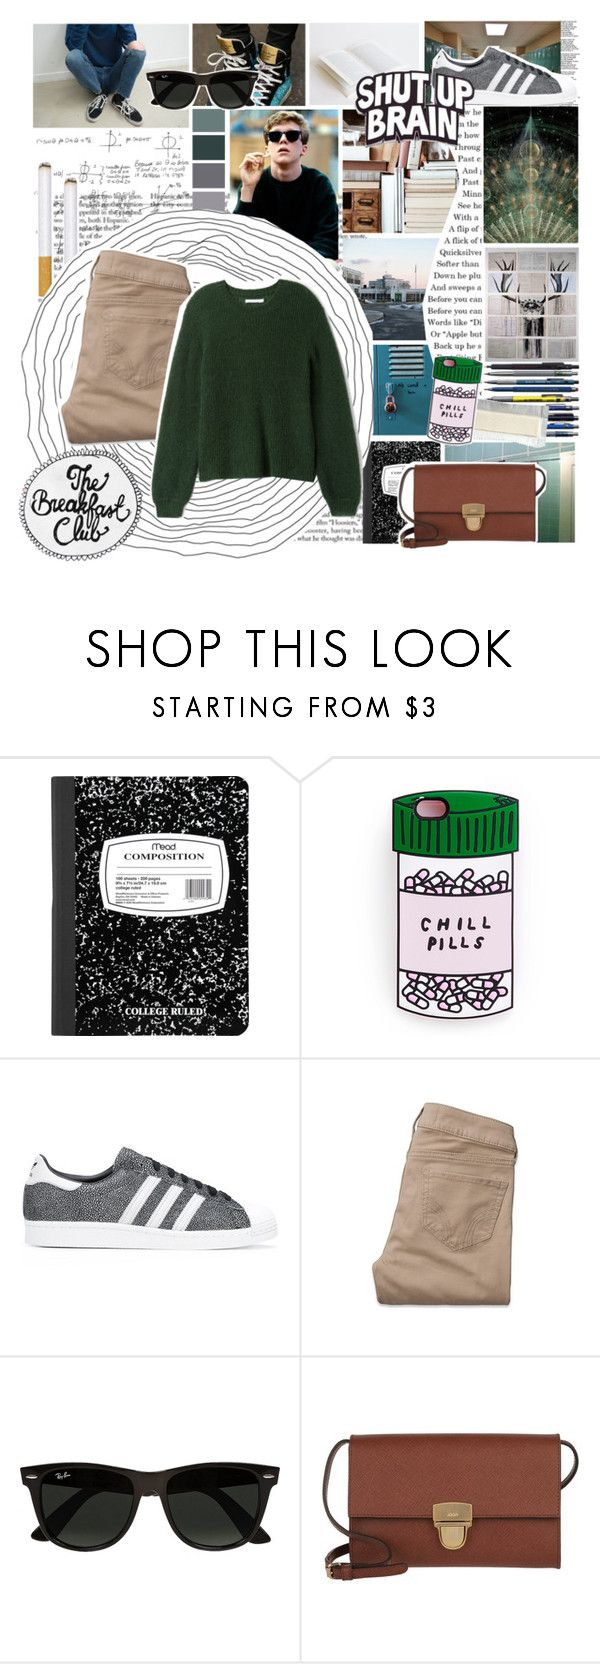 """The Breakfast Club - The Brain"" by meredithwelch ❤ liked on Polyvore featuring Edition, adidas Originals, Hollister Co., Ray-Ban, Joop!, 80s, breakfastclub, thebreakfastclub, brianJohnson and thebrain"